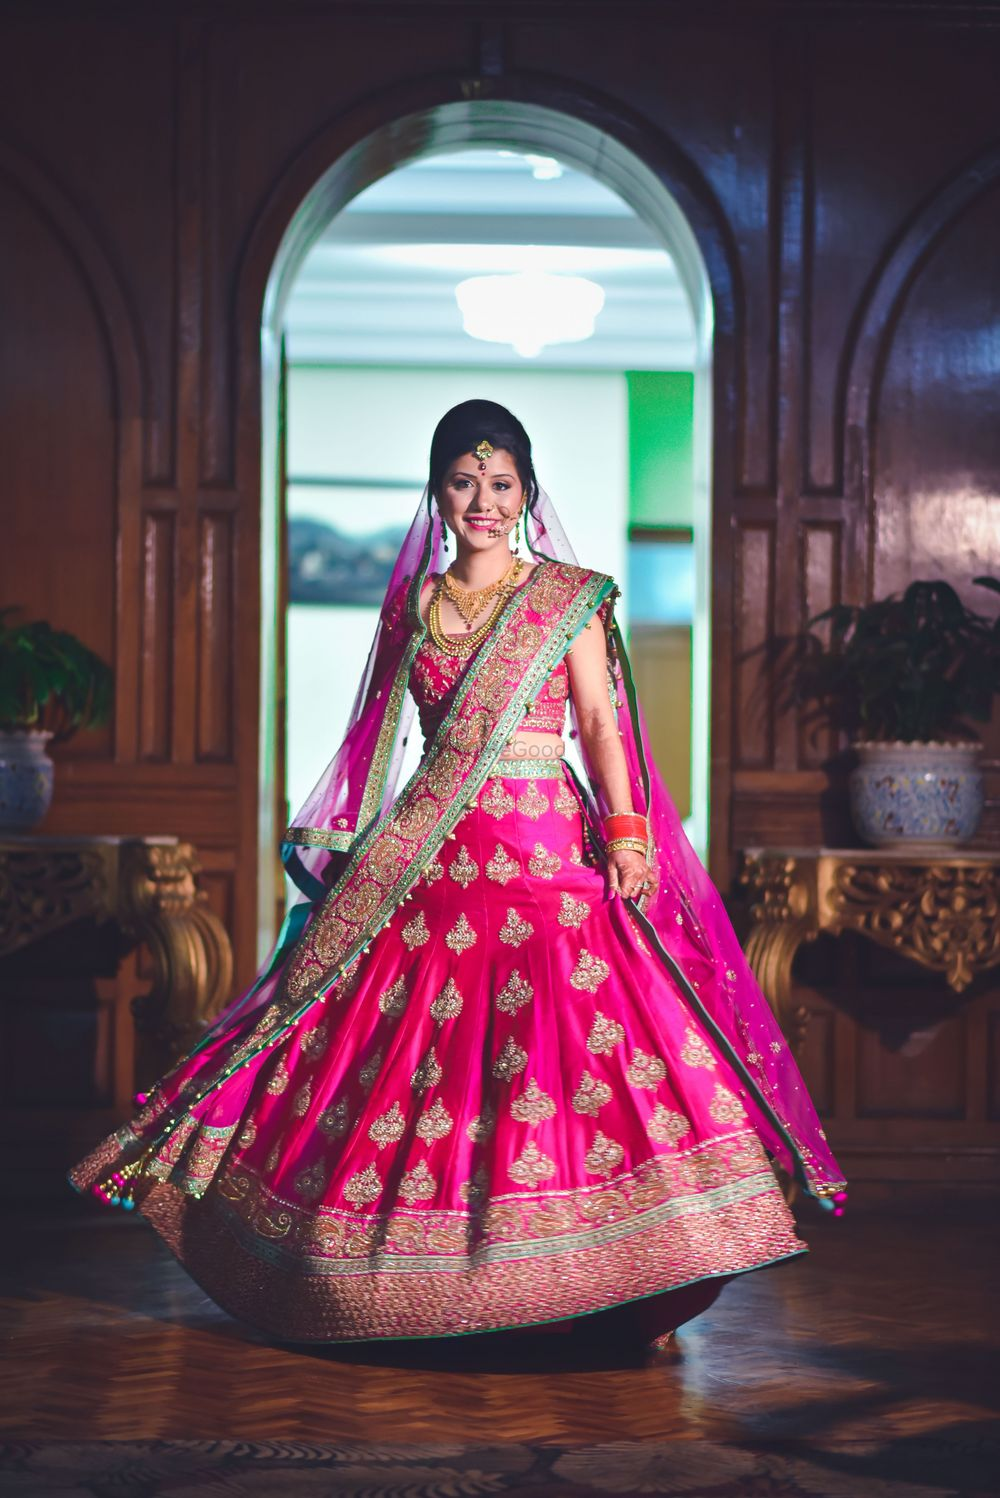 Photo of Bride twirling in red lehenga with gold motifs